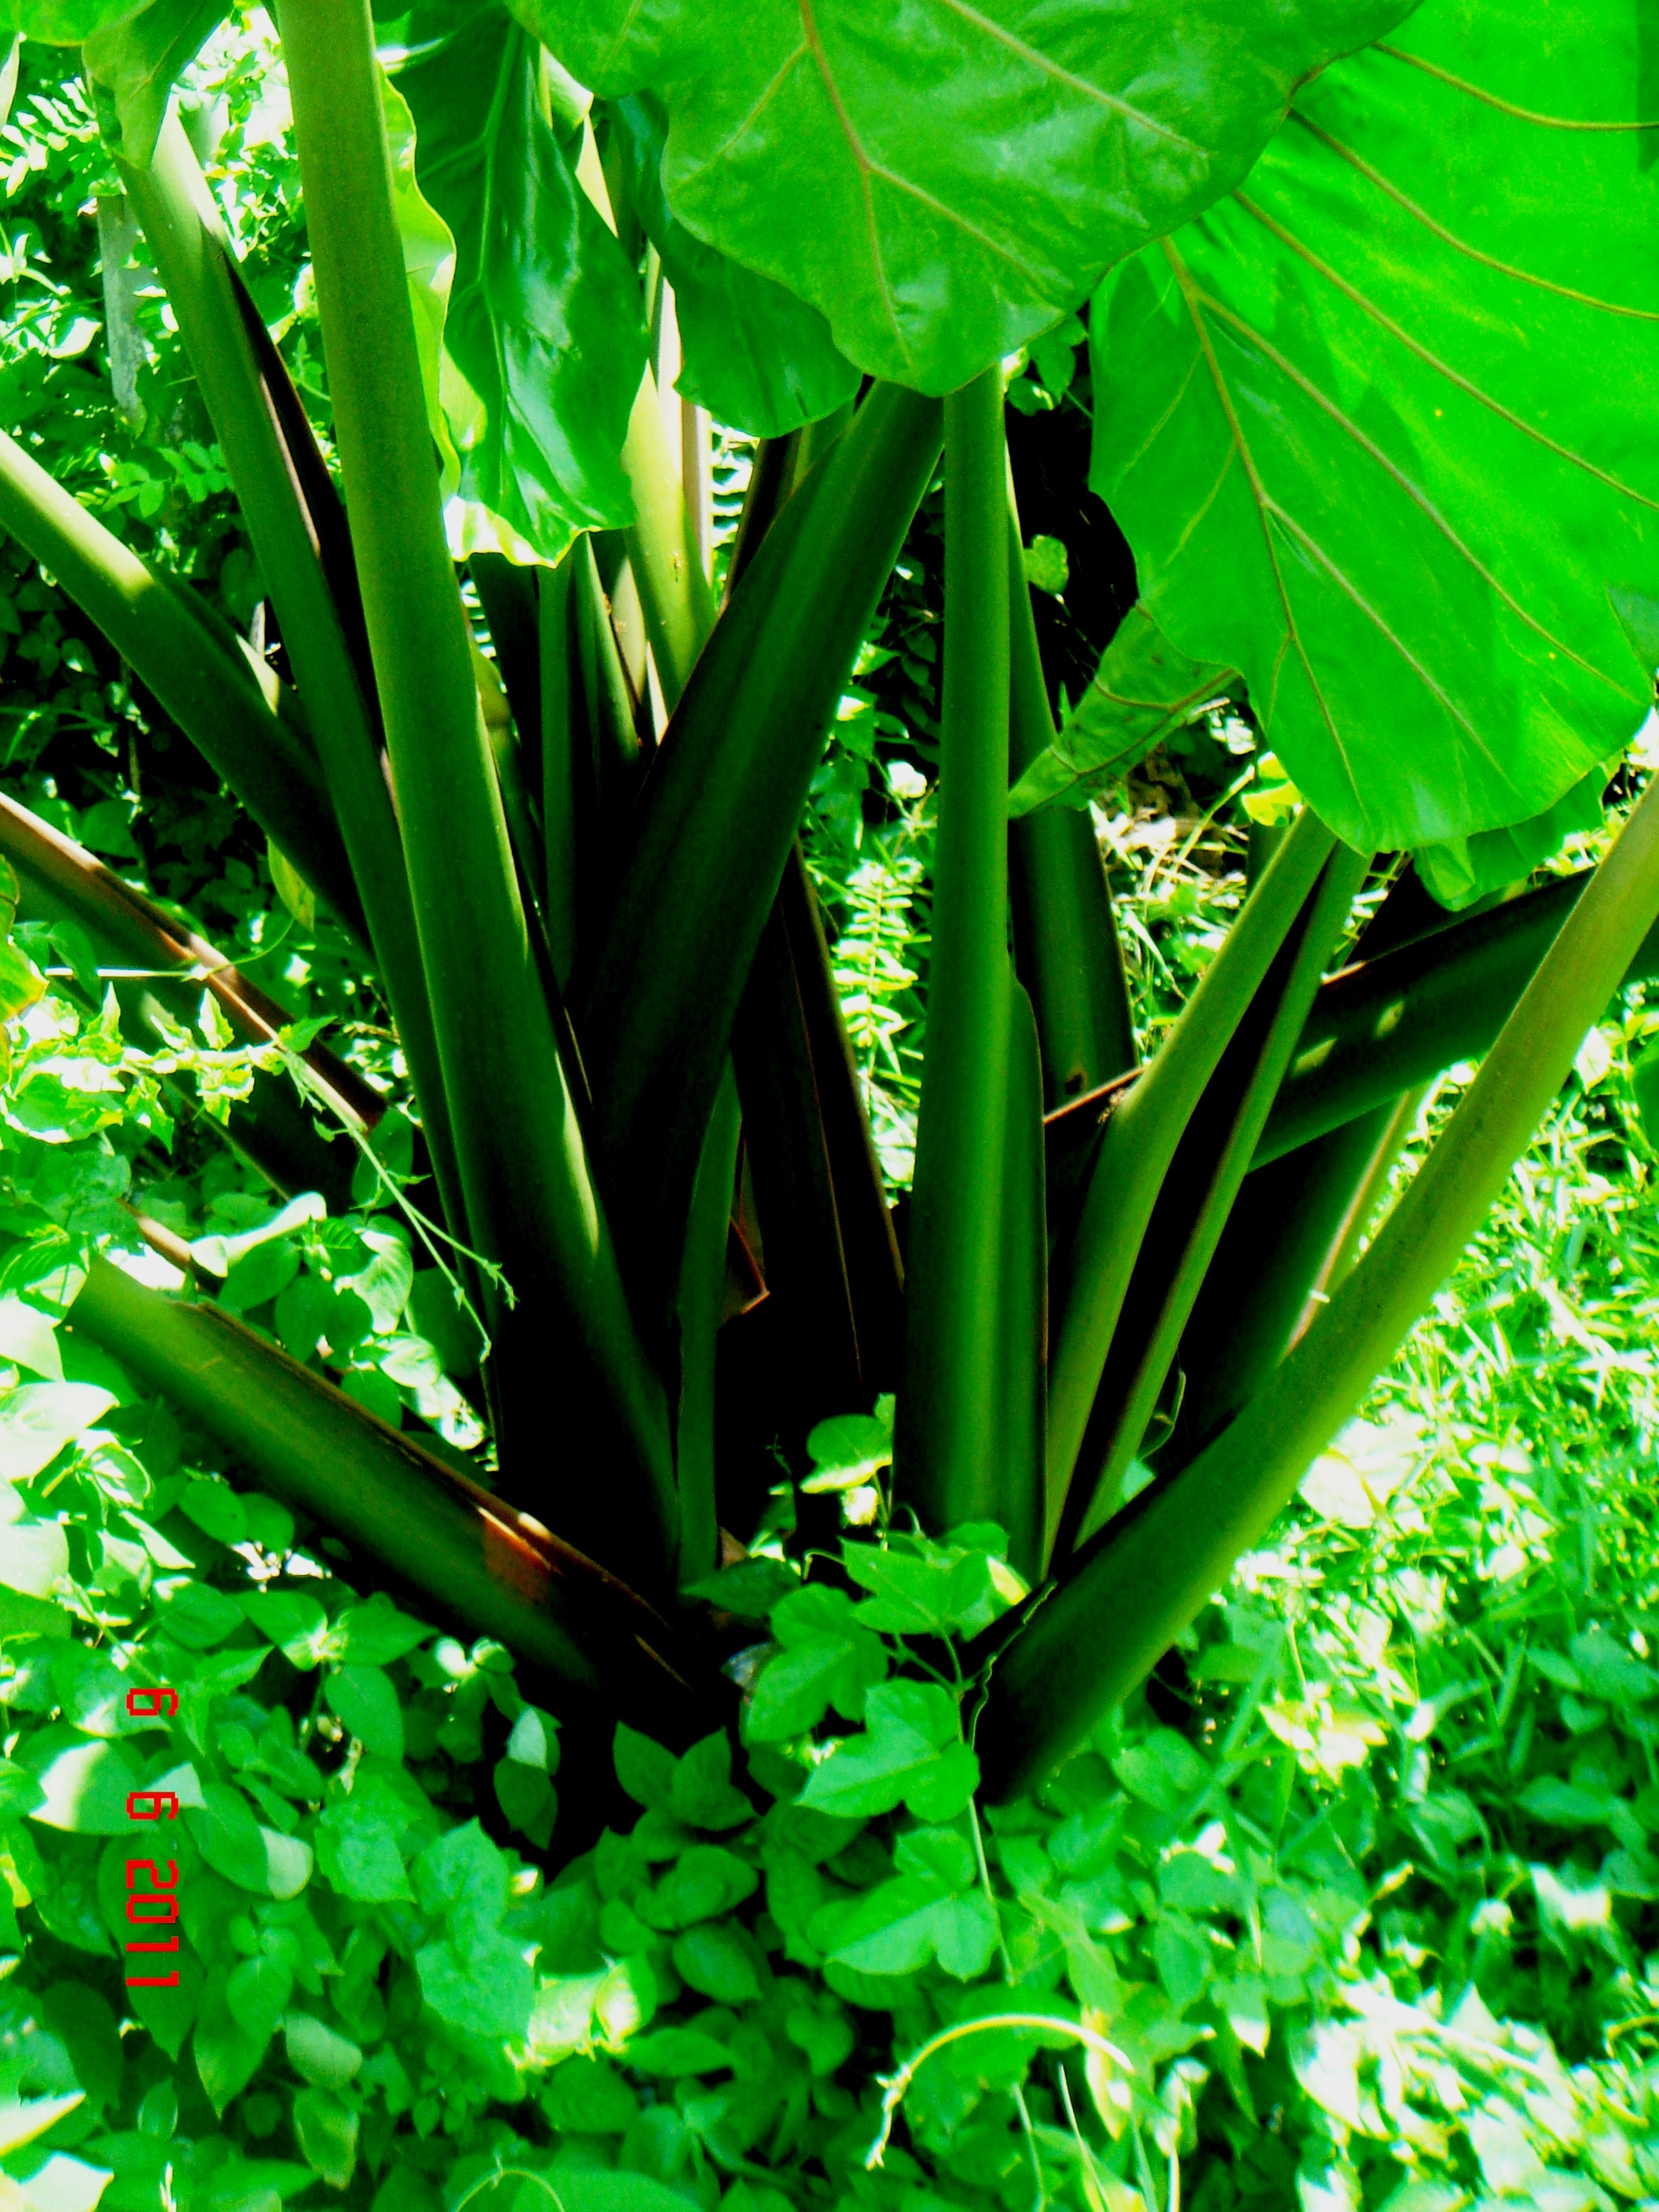 Image of giant taro